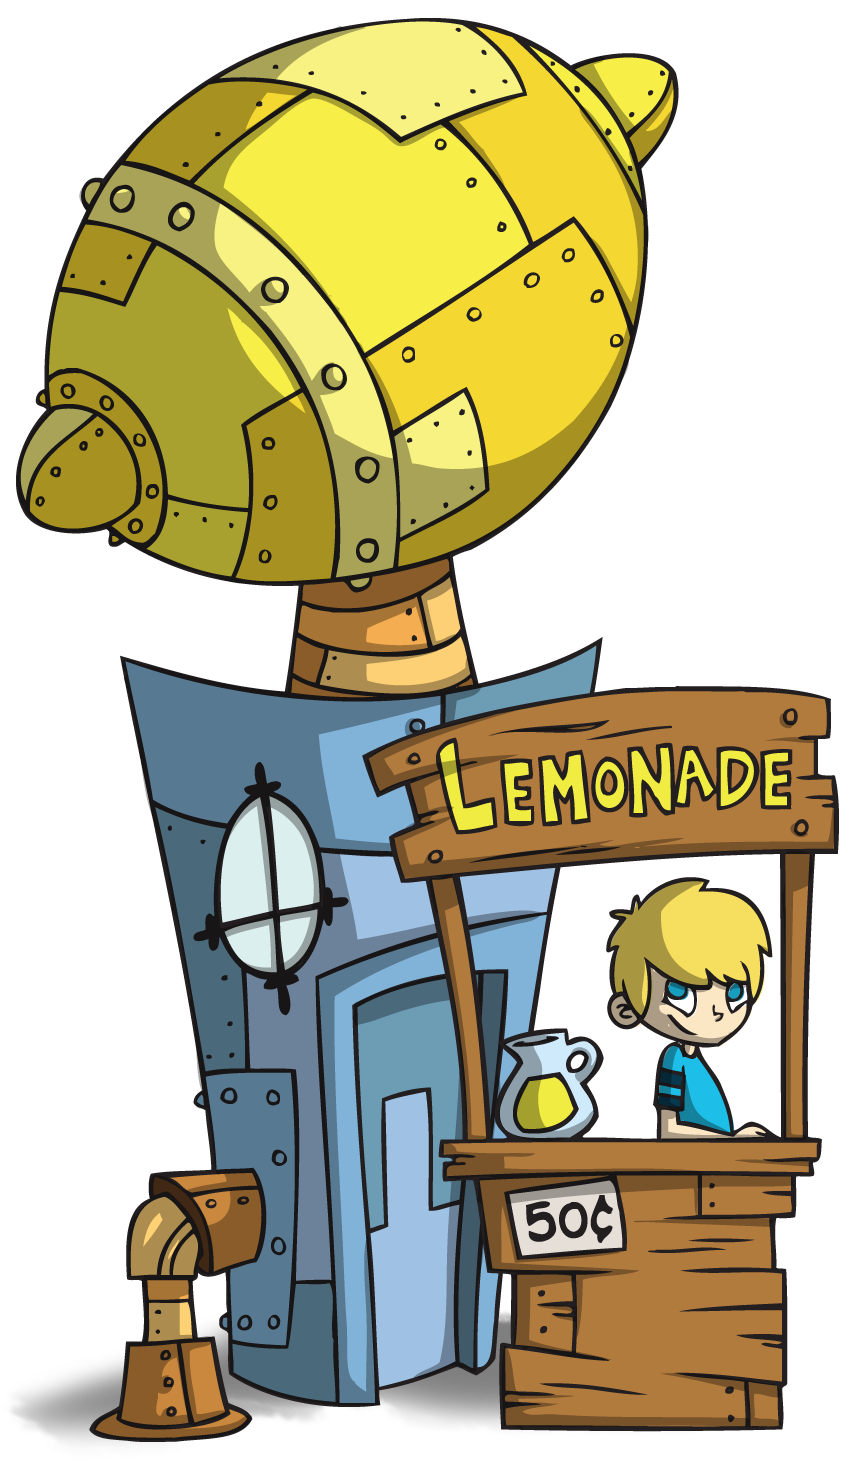 Boy in lemonade stand image